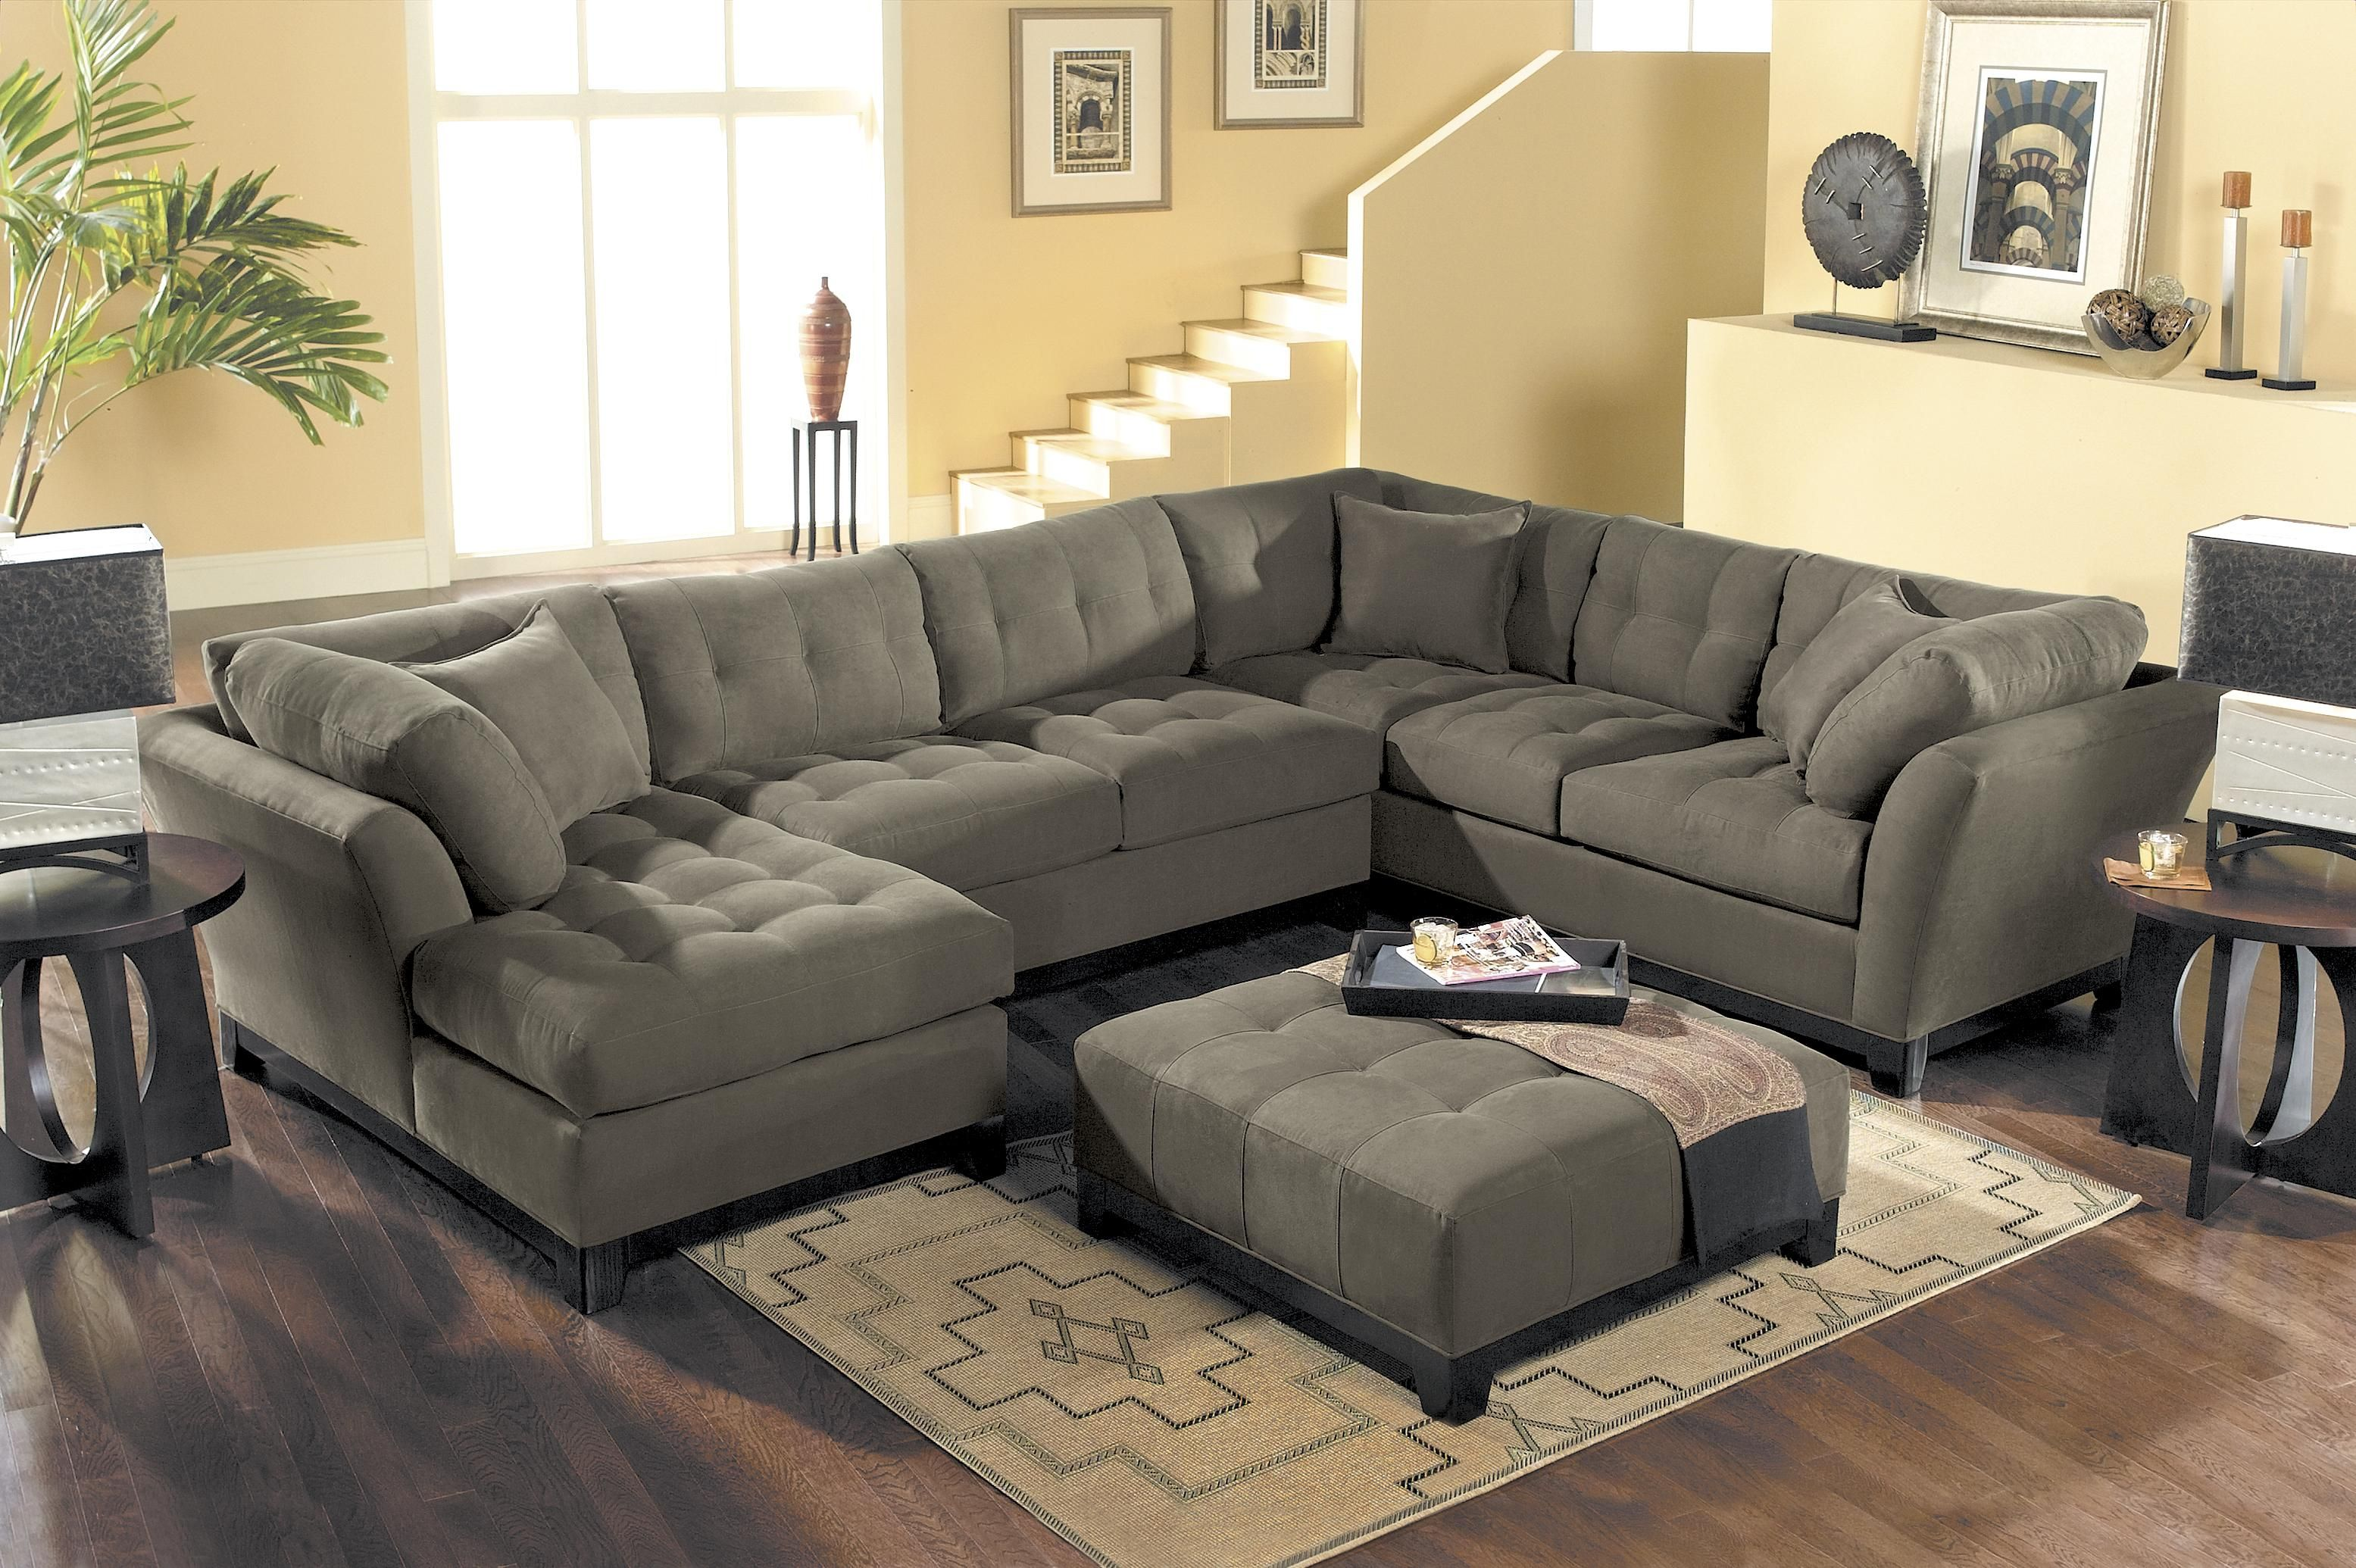 HM Richards Metropolis Tufted Sectional Sofa With Chaise Lounger    BigFurnitureWebsite   Sofa Sectional